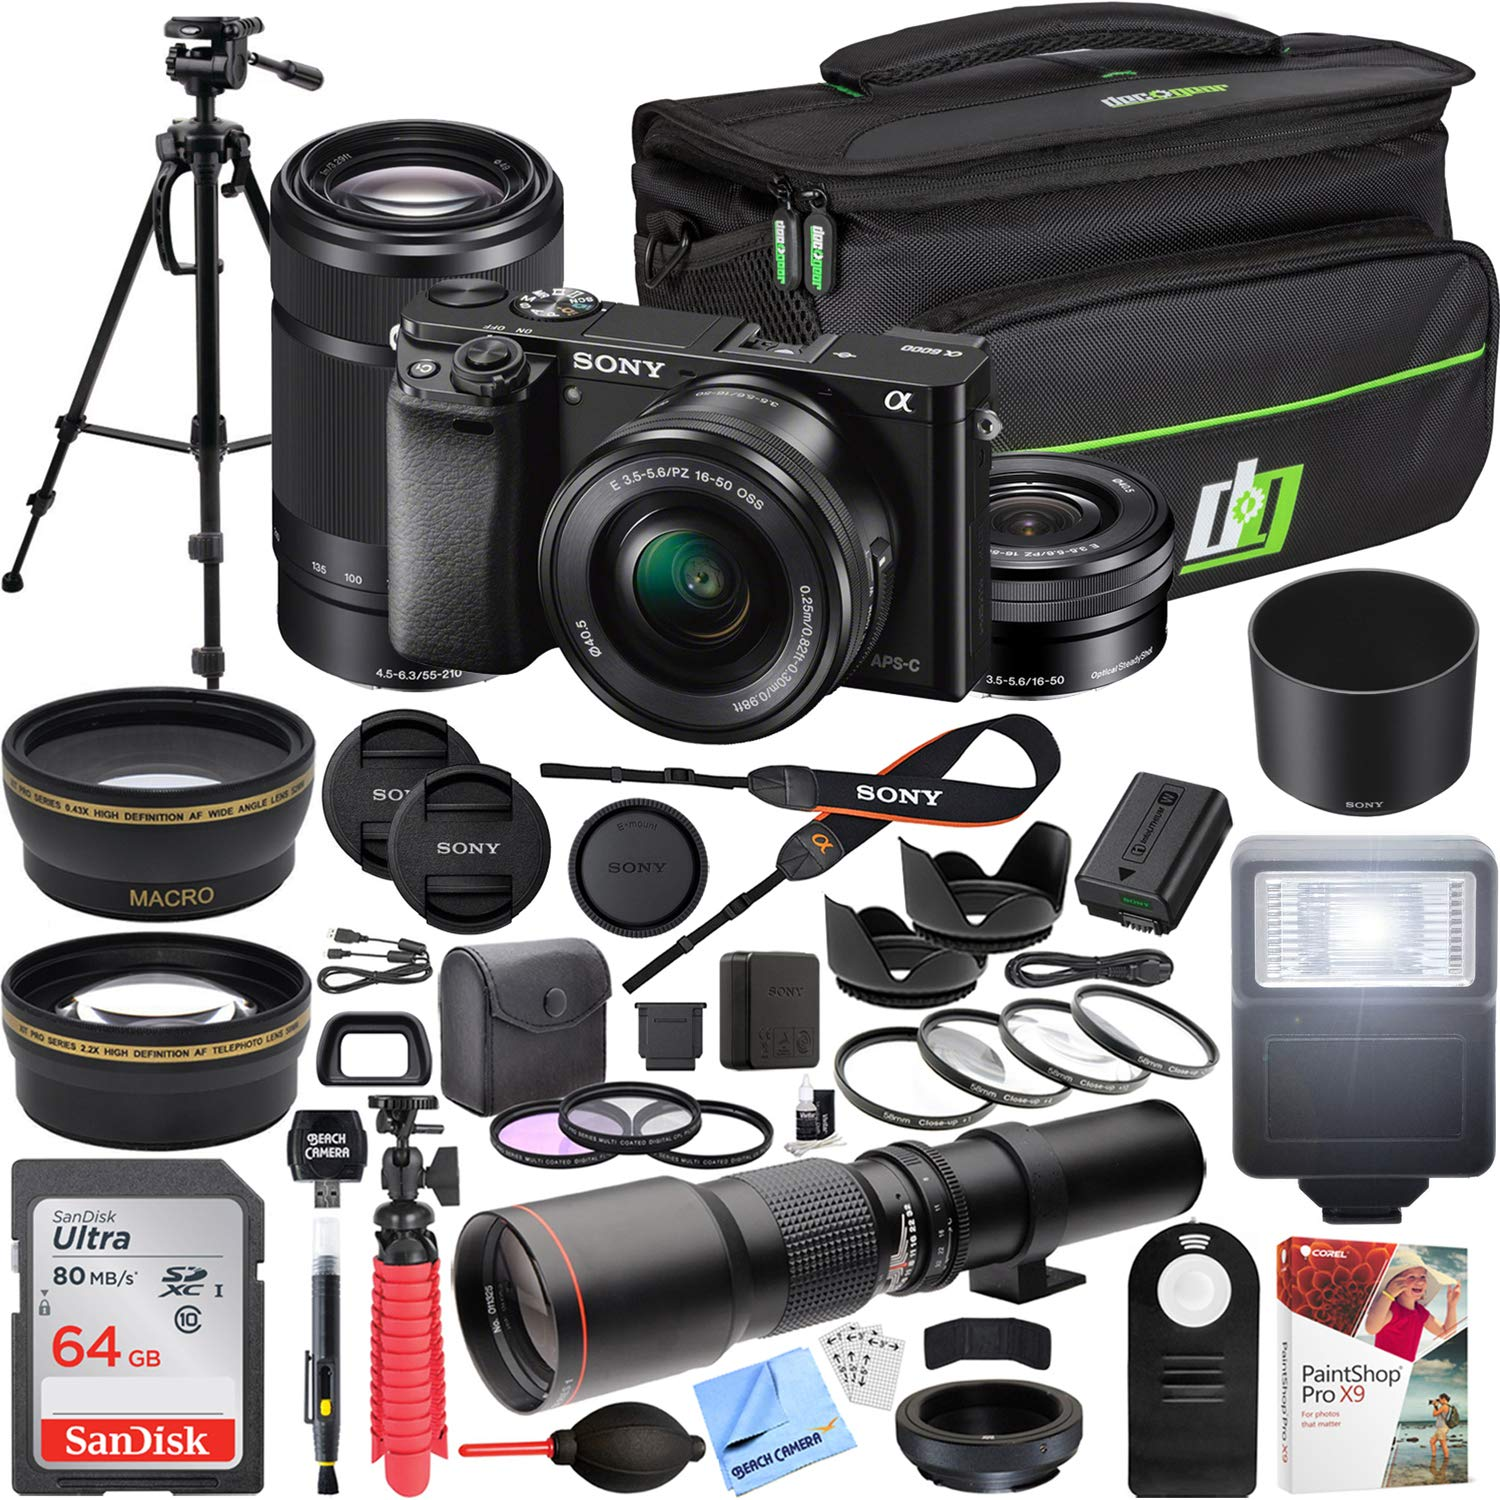 Sony Alpha a6000 Mirrorless Digital Camera with 16-50mm Lens Bundle with 55-210mm Zoom E-Mount Lens, 500mm Preset Telephoto Lens, 64GB Card and Accessories (19 Items) by Sony